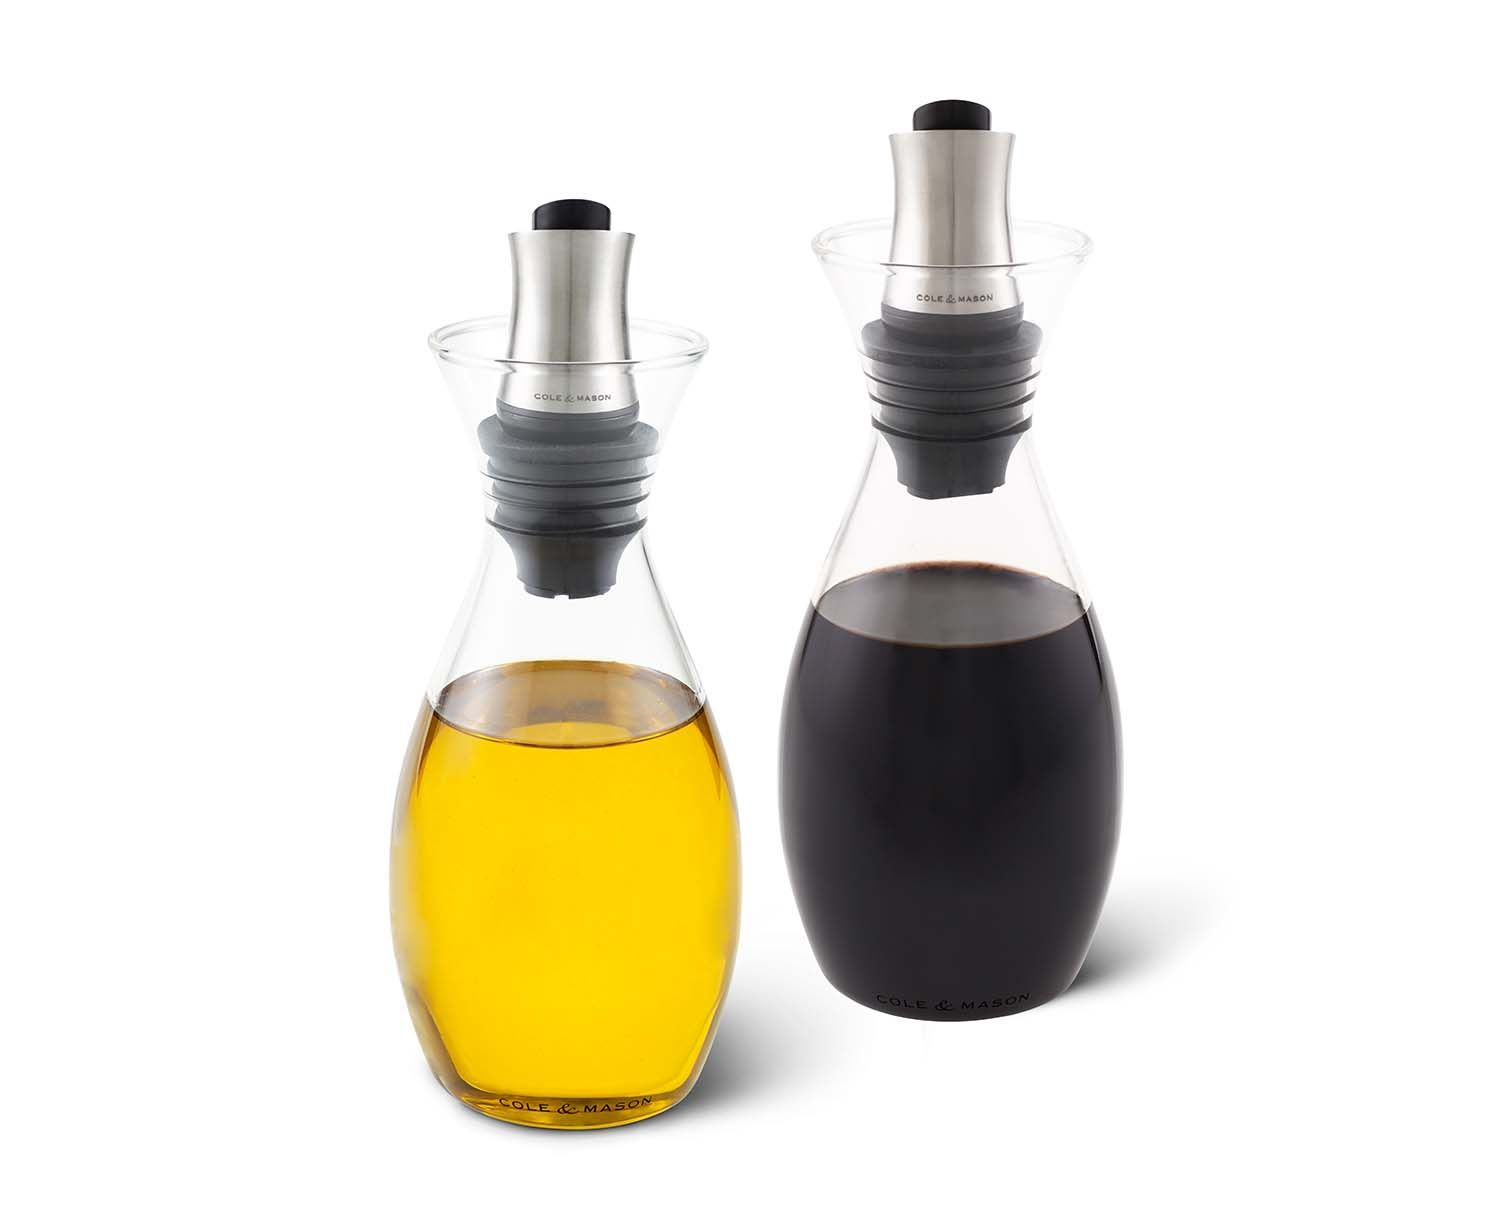 How-to-Decorate-Your-Kitchen-Like-Instagram-Cole-&-Mason-Flow-Select-Oil-&-Vinegar-Pourer.jpg